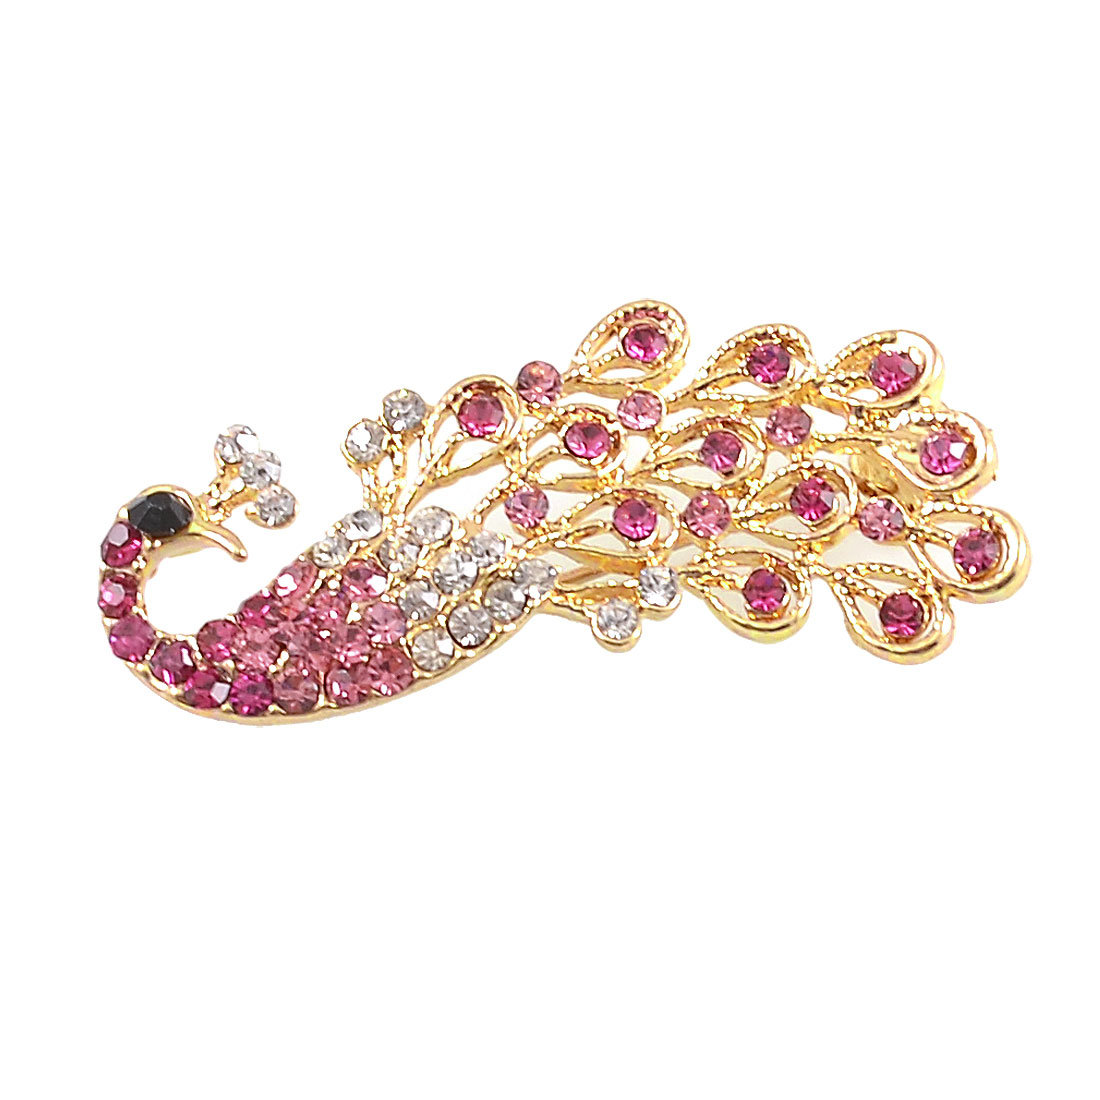 Gold Tone Fuchsia Rhinestone Detail Peacock Design Metal Breastpin Brooch